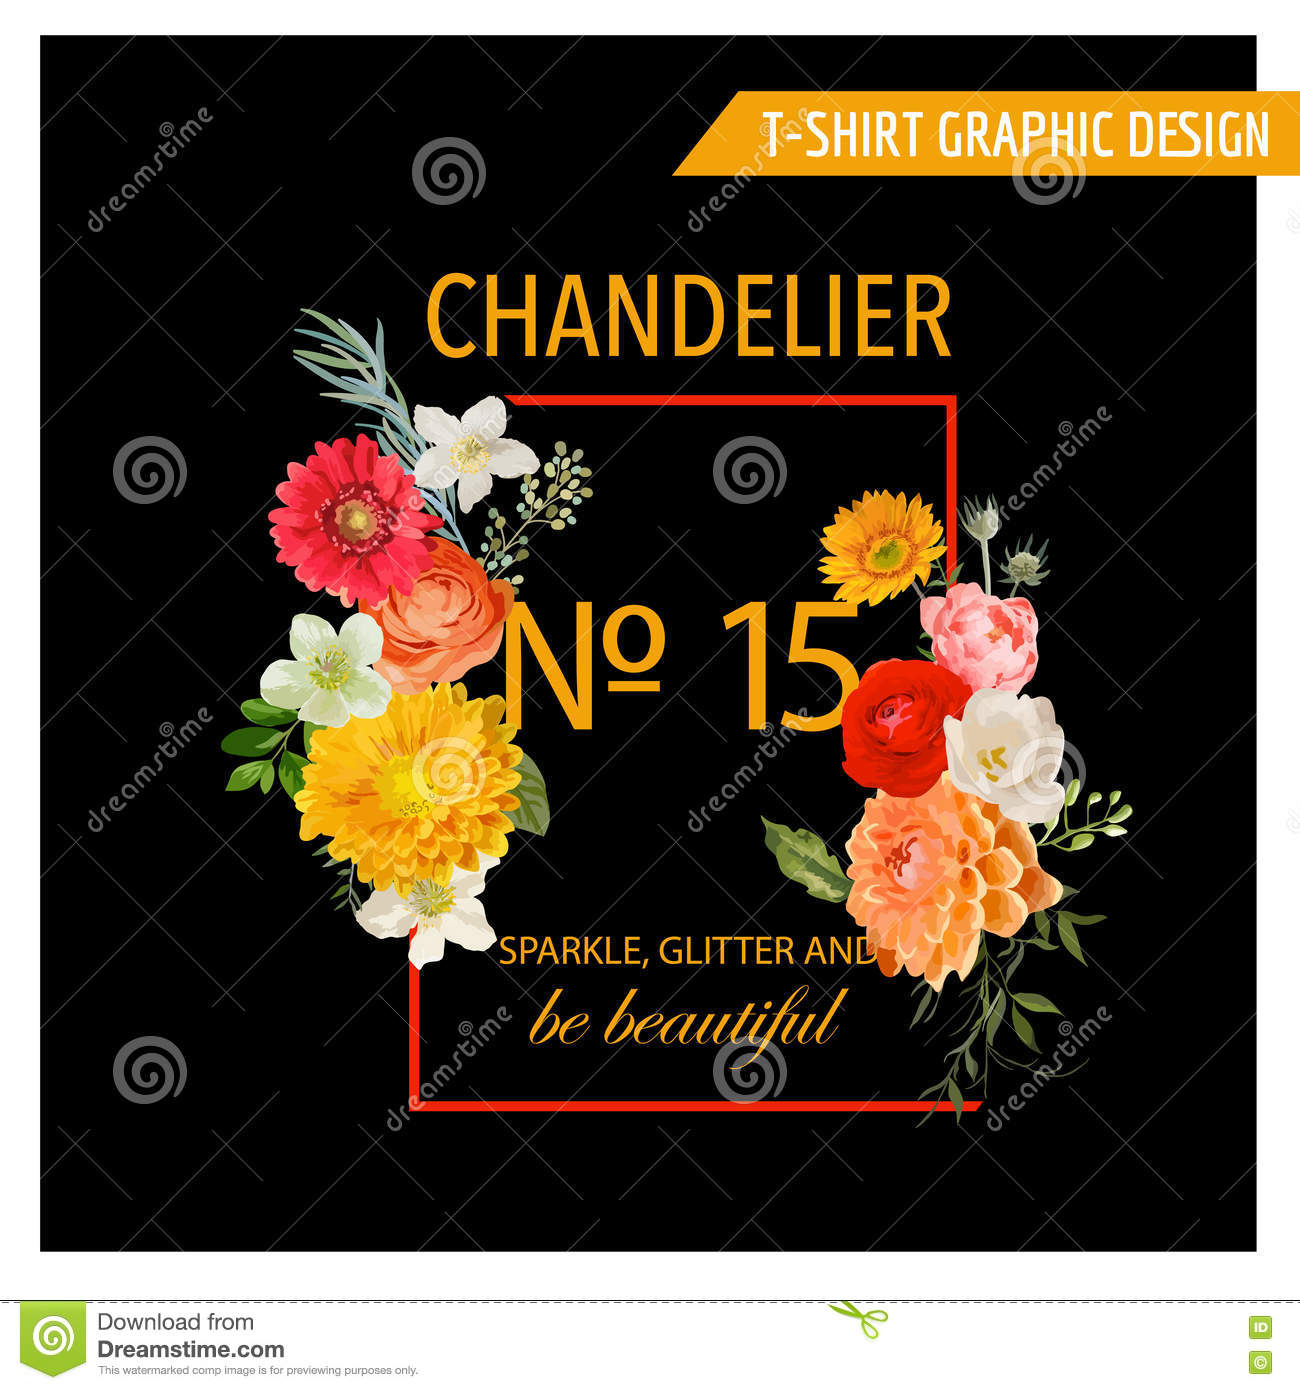 Colorful t shirt graphic design cartoon vector for T shirt graphic designer